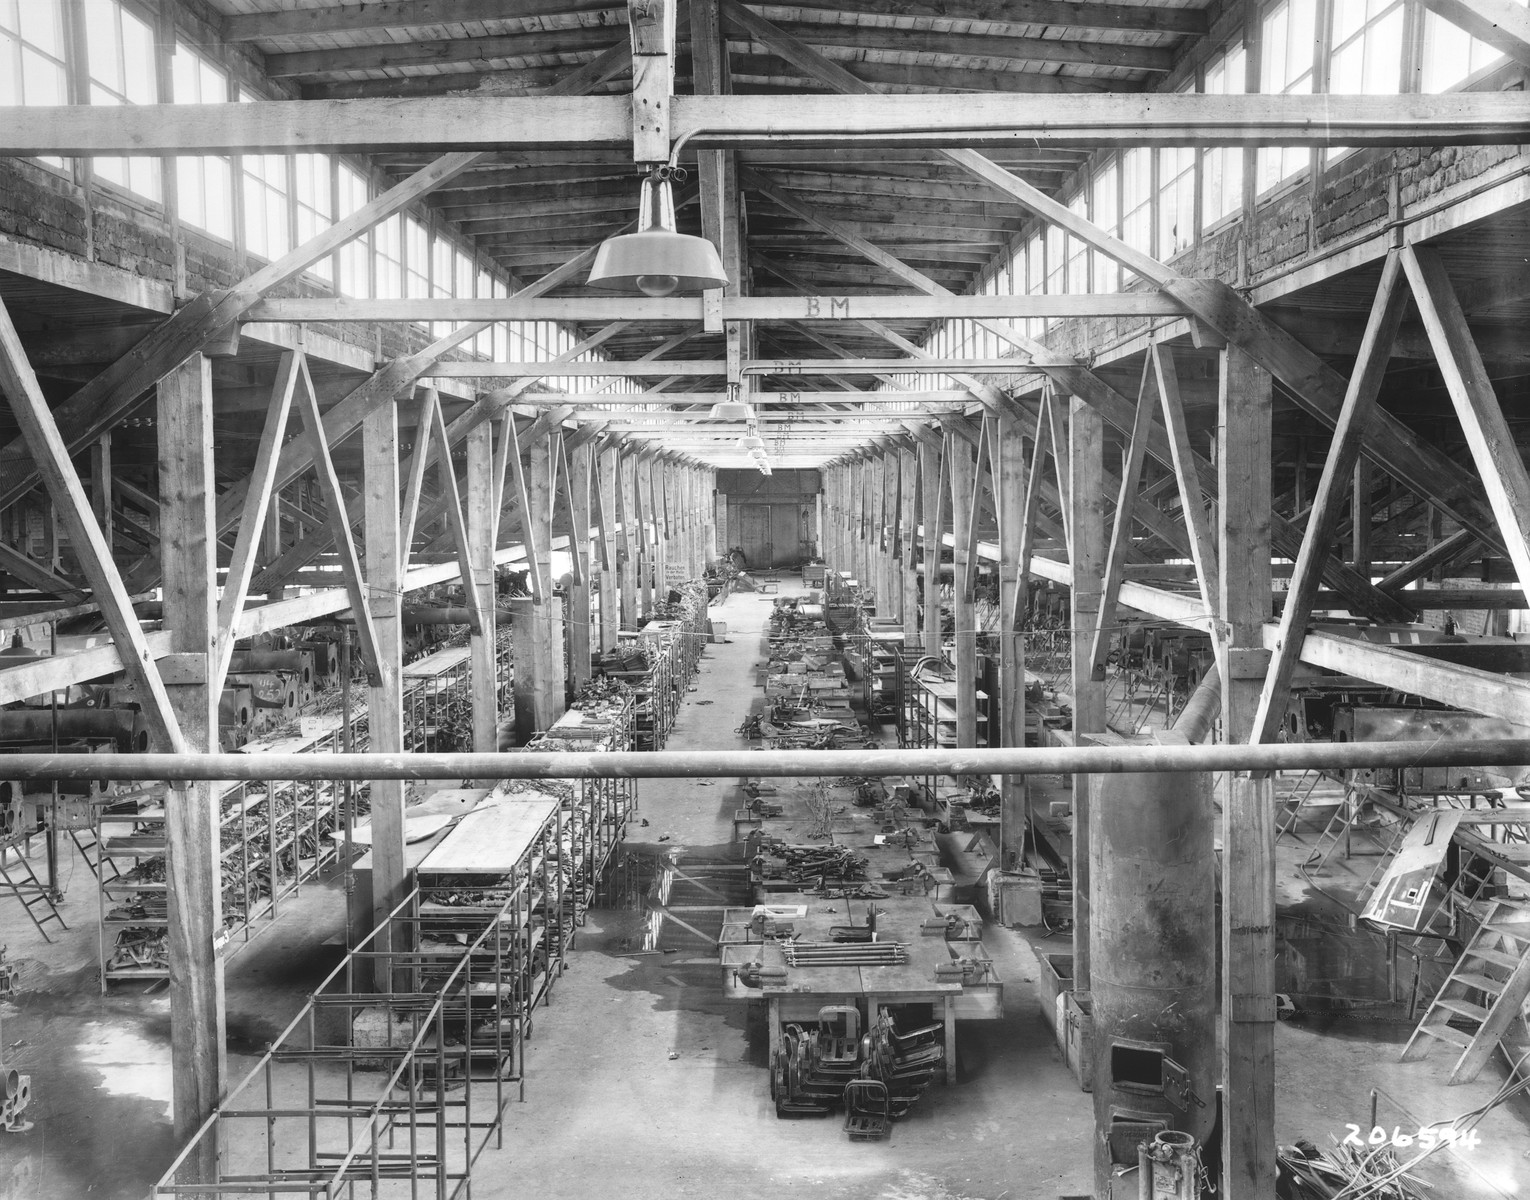 Interior view of an abandoned airplane factory near Flossenbuerg, where inmates of the nearby concentration camp were forced to work.